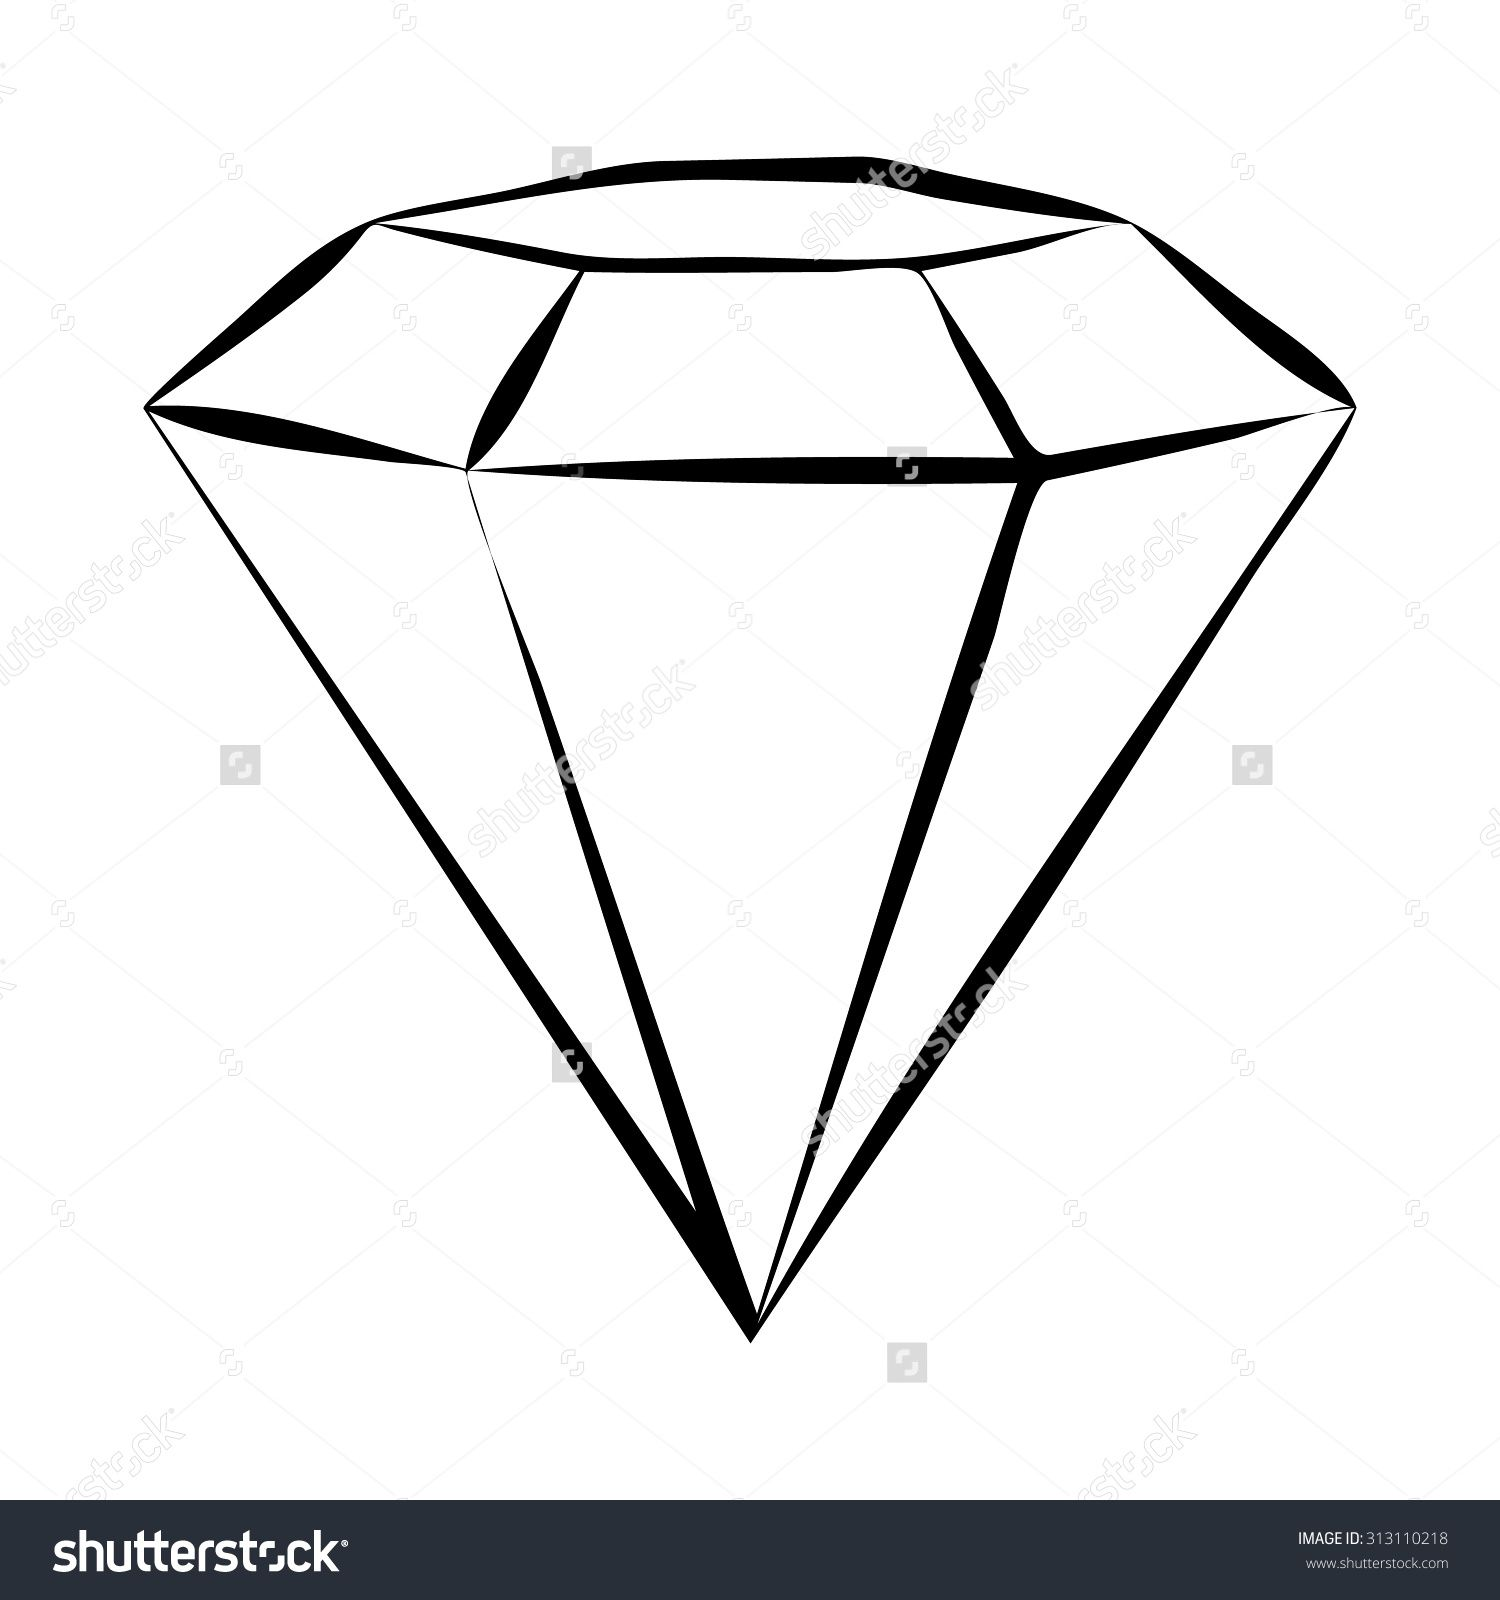 Diamond Symbol Vector Skech. Black And White - 313110218 ...